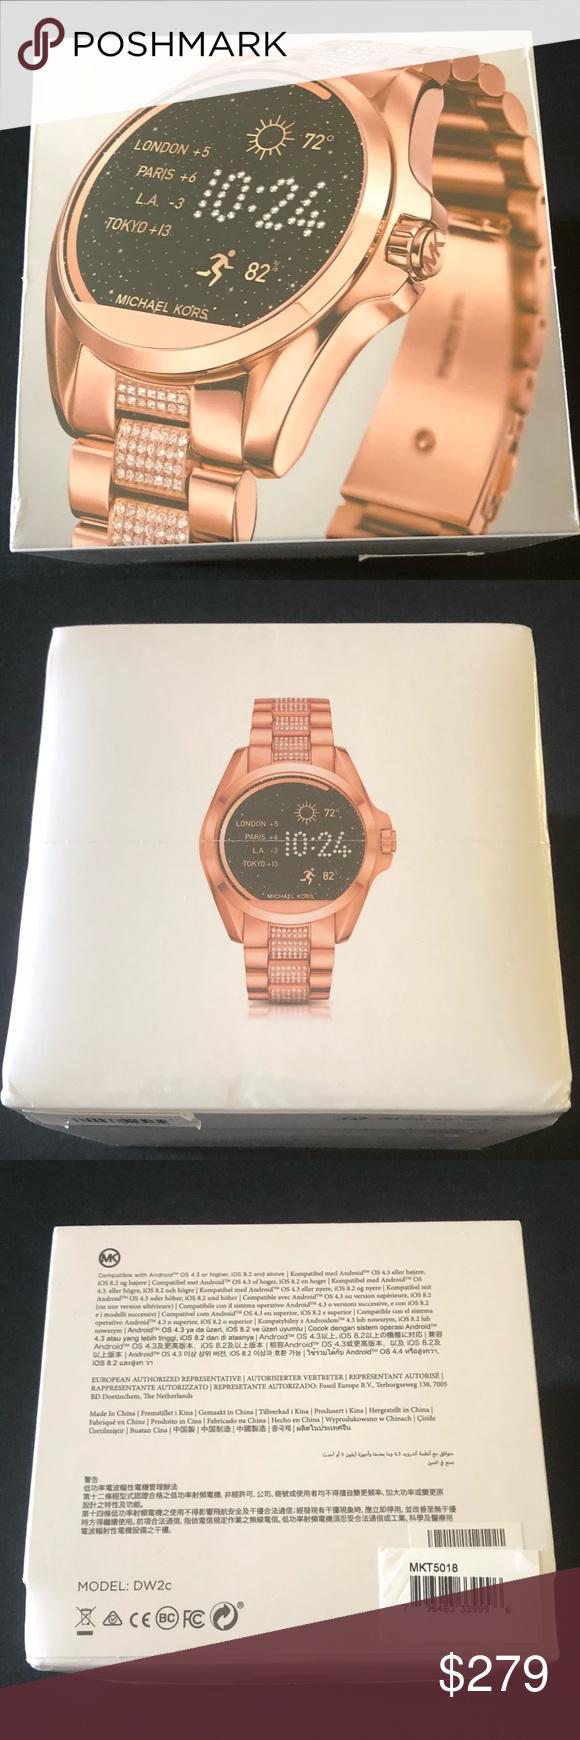 55779a15bc49 Michael Kors Access Bradshaw Smartwatch Rose Gold MKT 5018 Rose Gold Michael  Kors Touchscreen Smartwatch New in Factory Sealed Box iPhone and Android ...